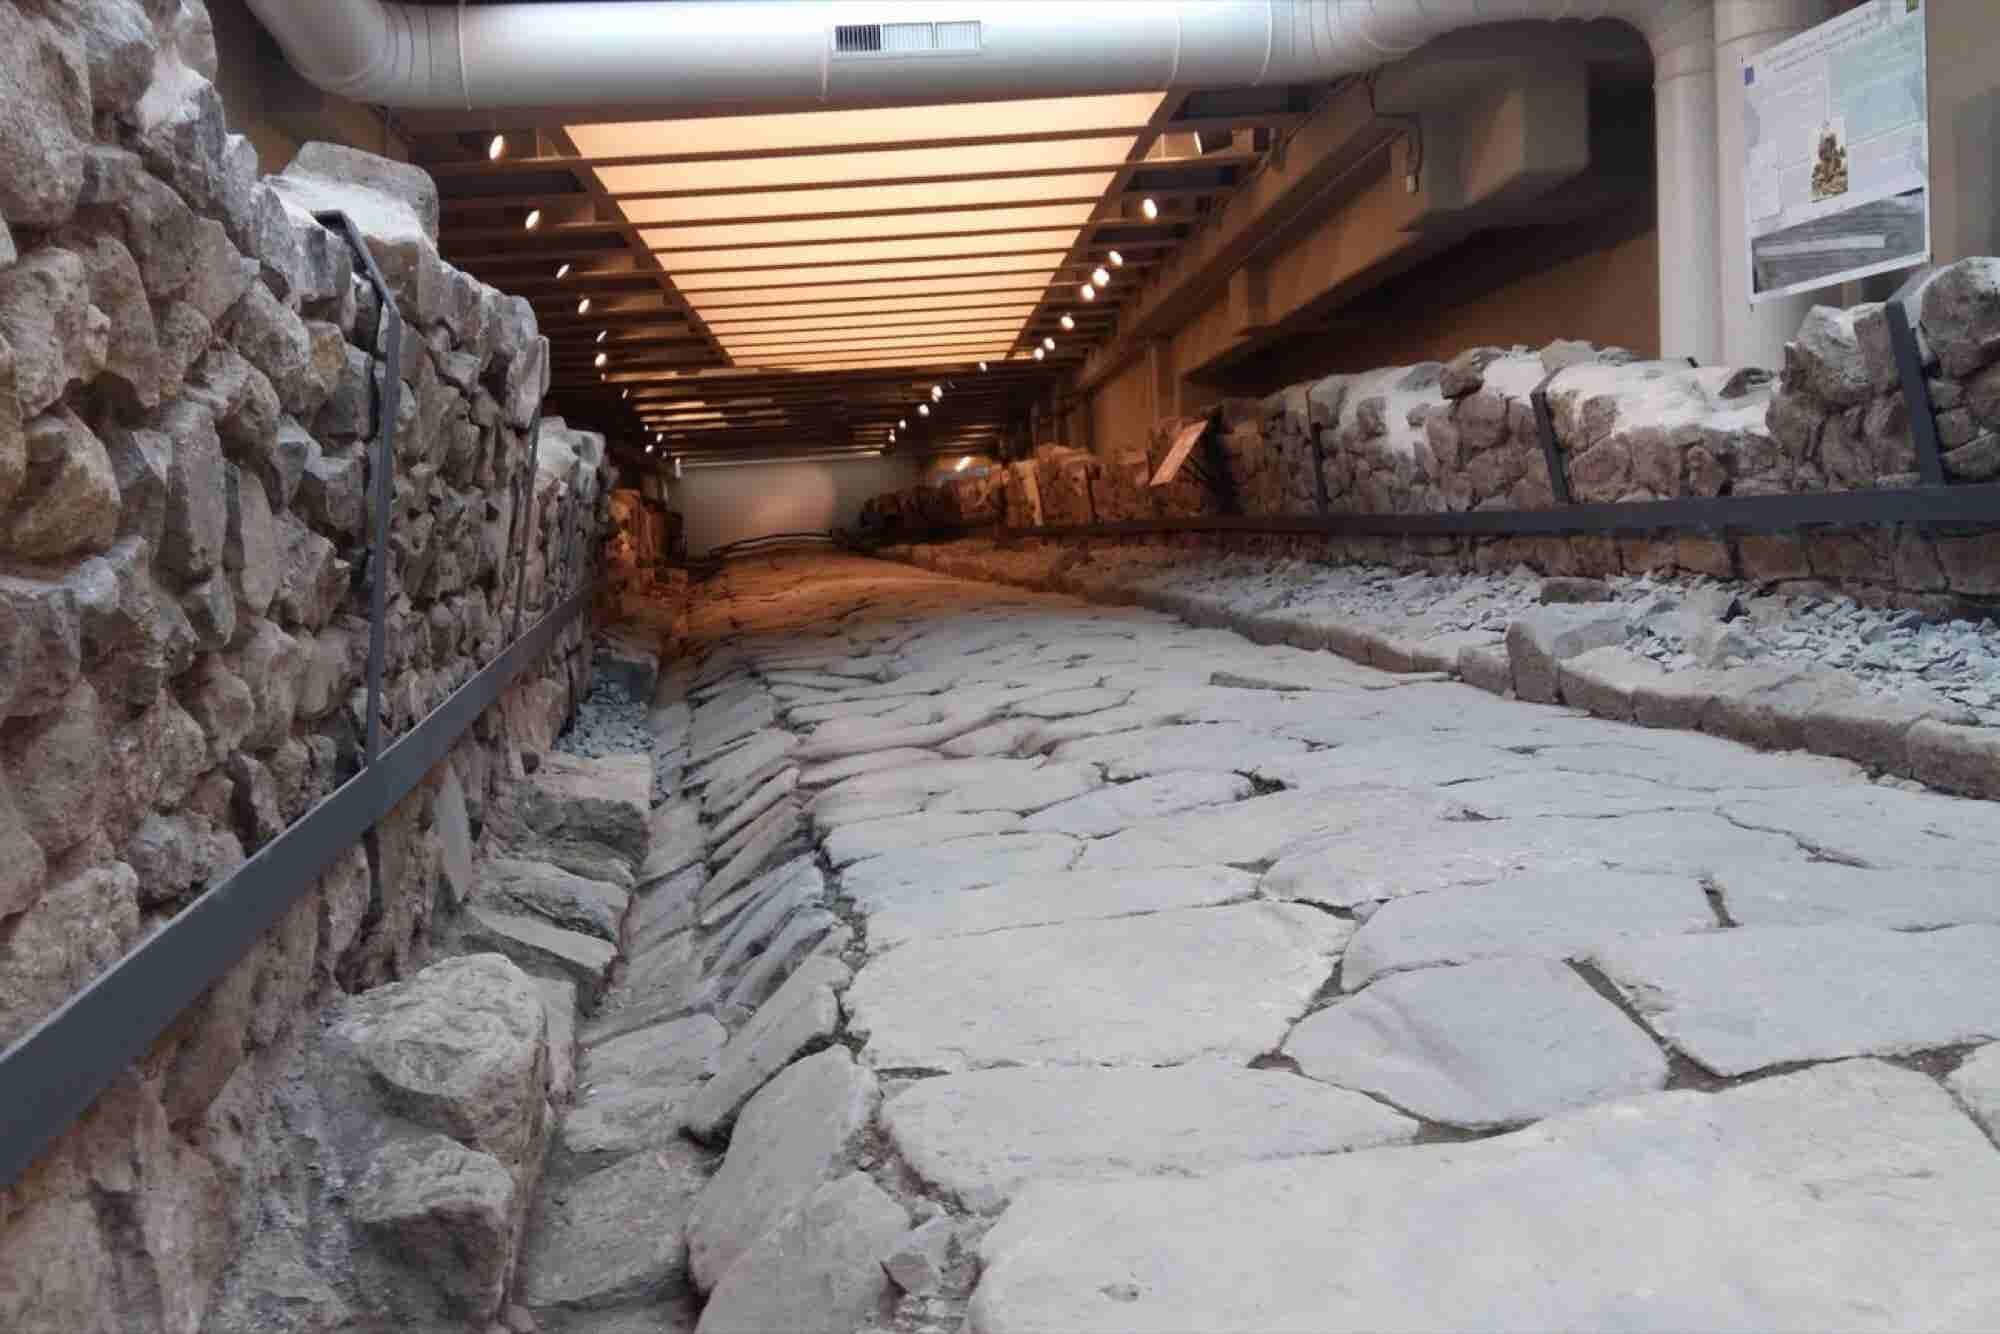 McDonald's Preserves Ancient Roman Road Beneath Its New Restaurant